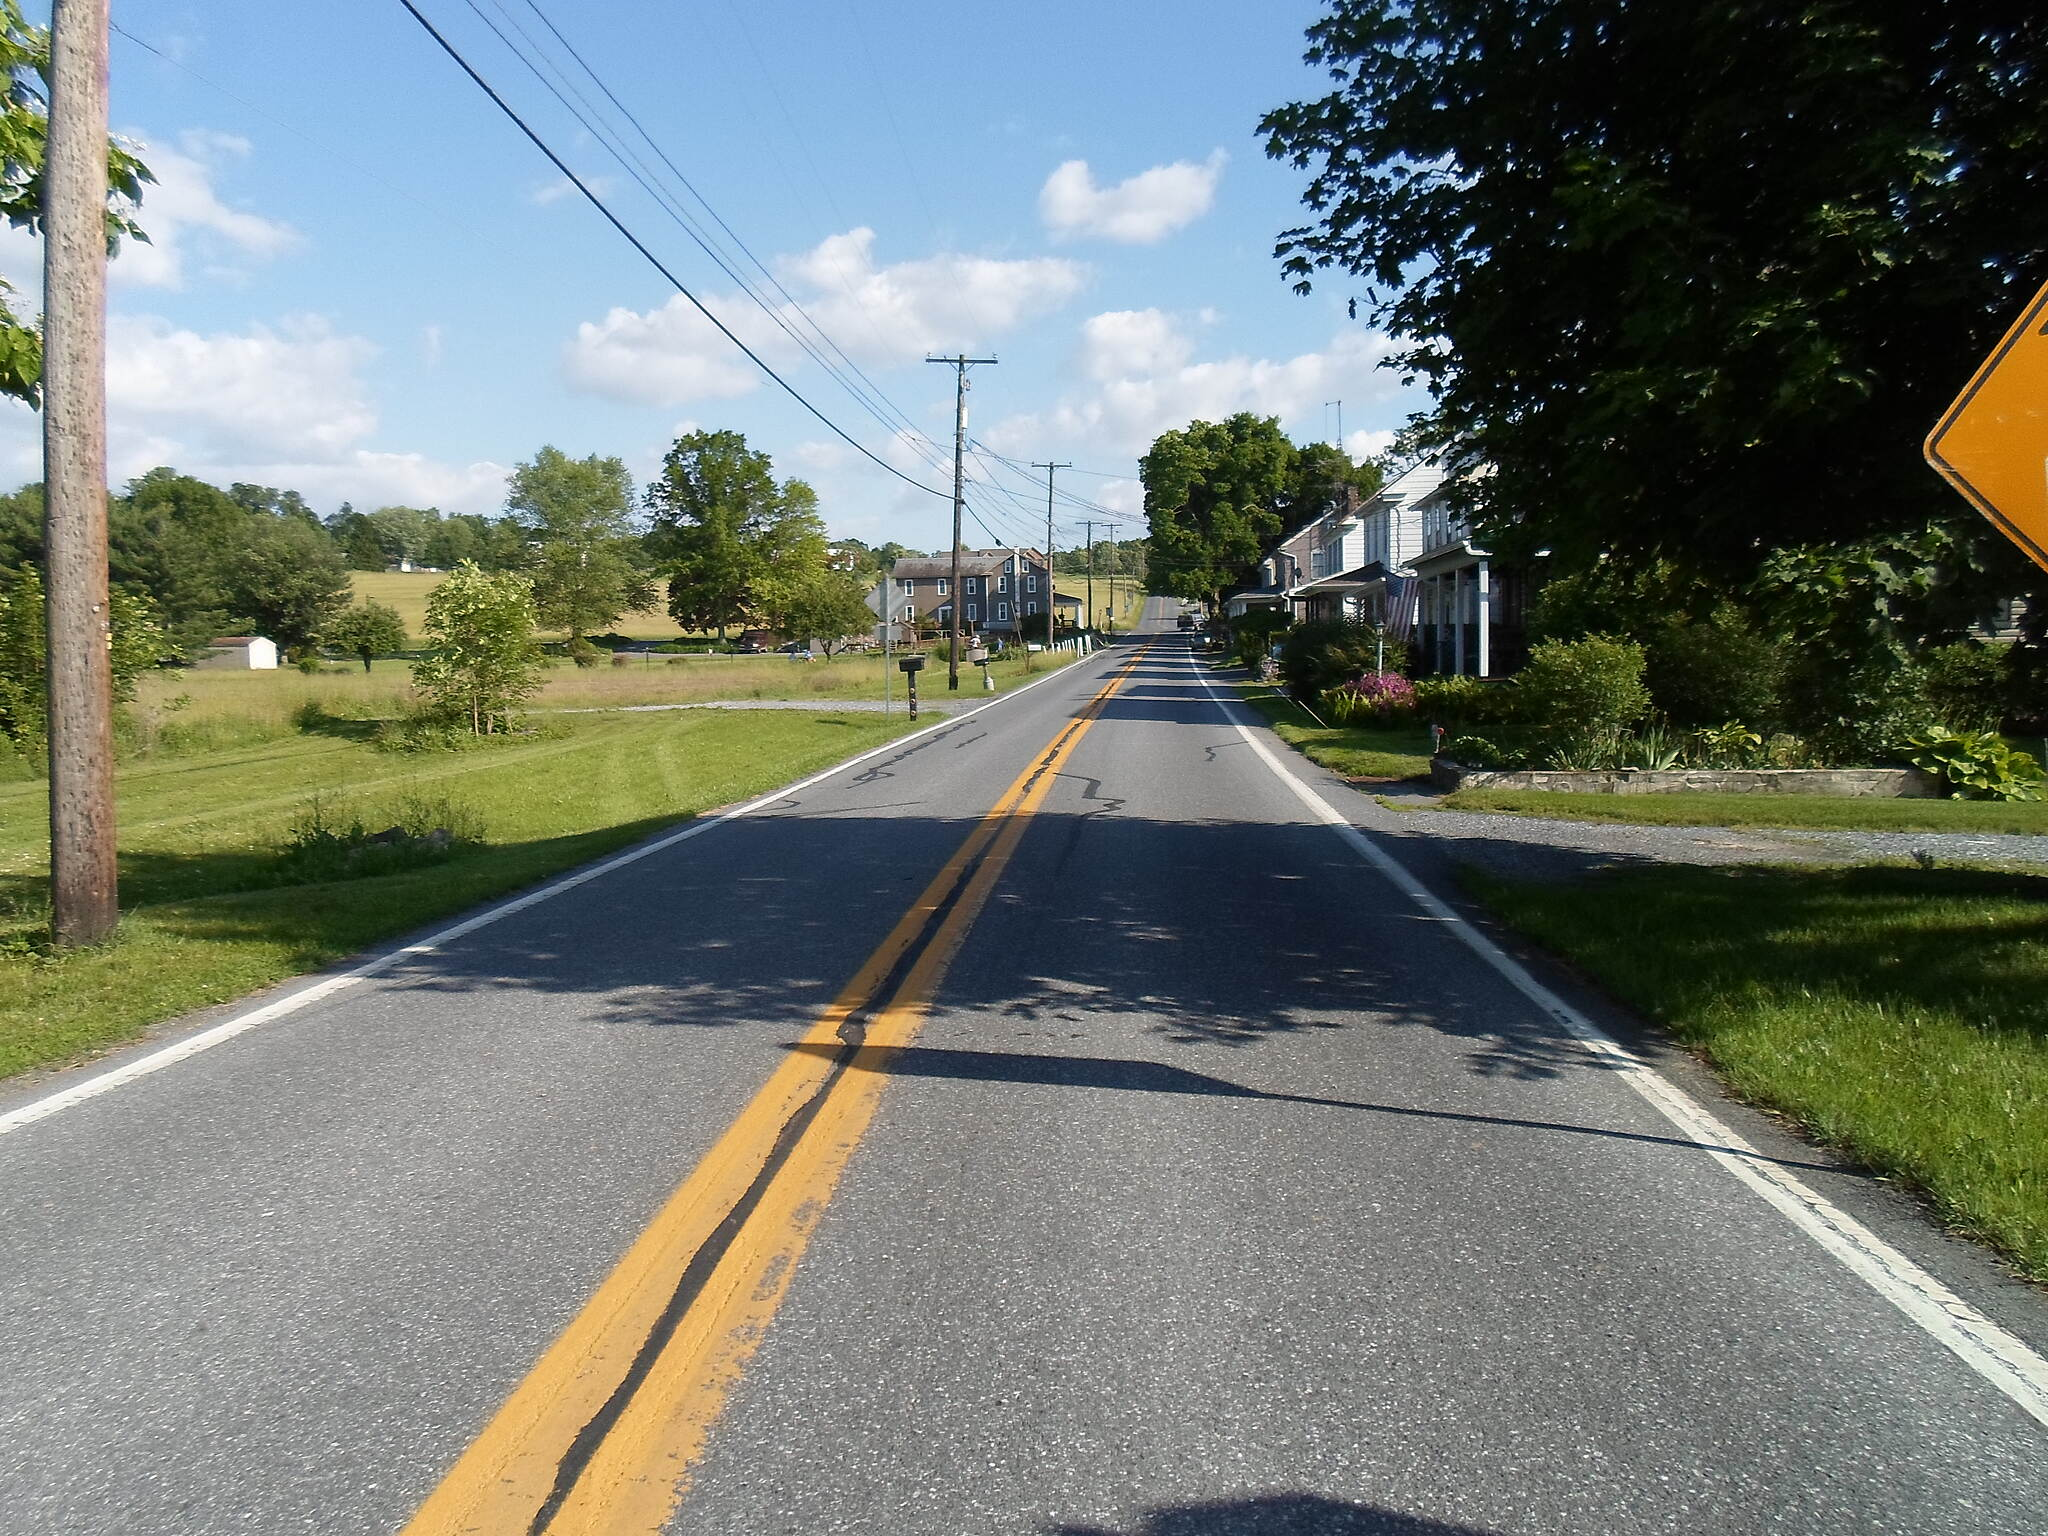 Conewago Recreation Trail Conewago Recreation Trail The quaint, rural village of Bellaire, located on Lancaster County's northern border outside Elizabethtown. Taken June 2015.